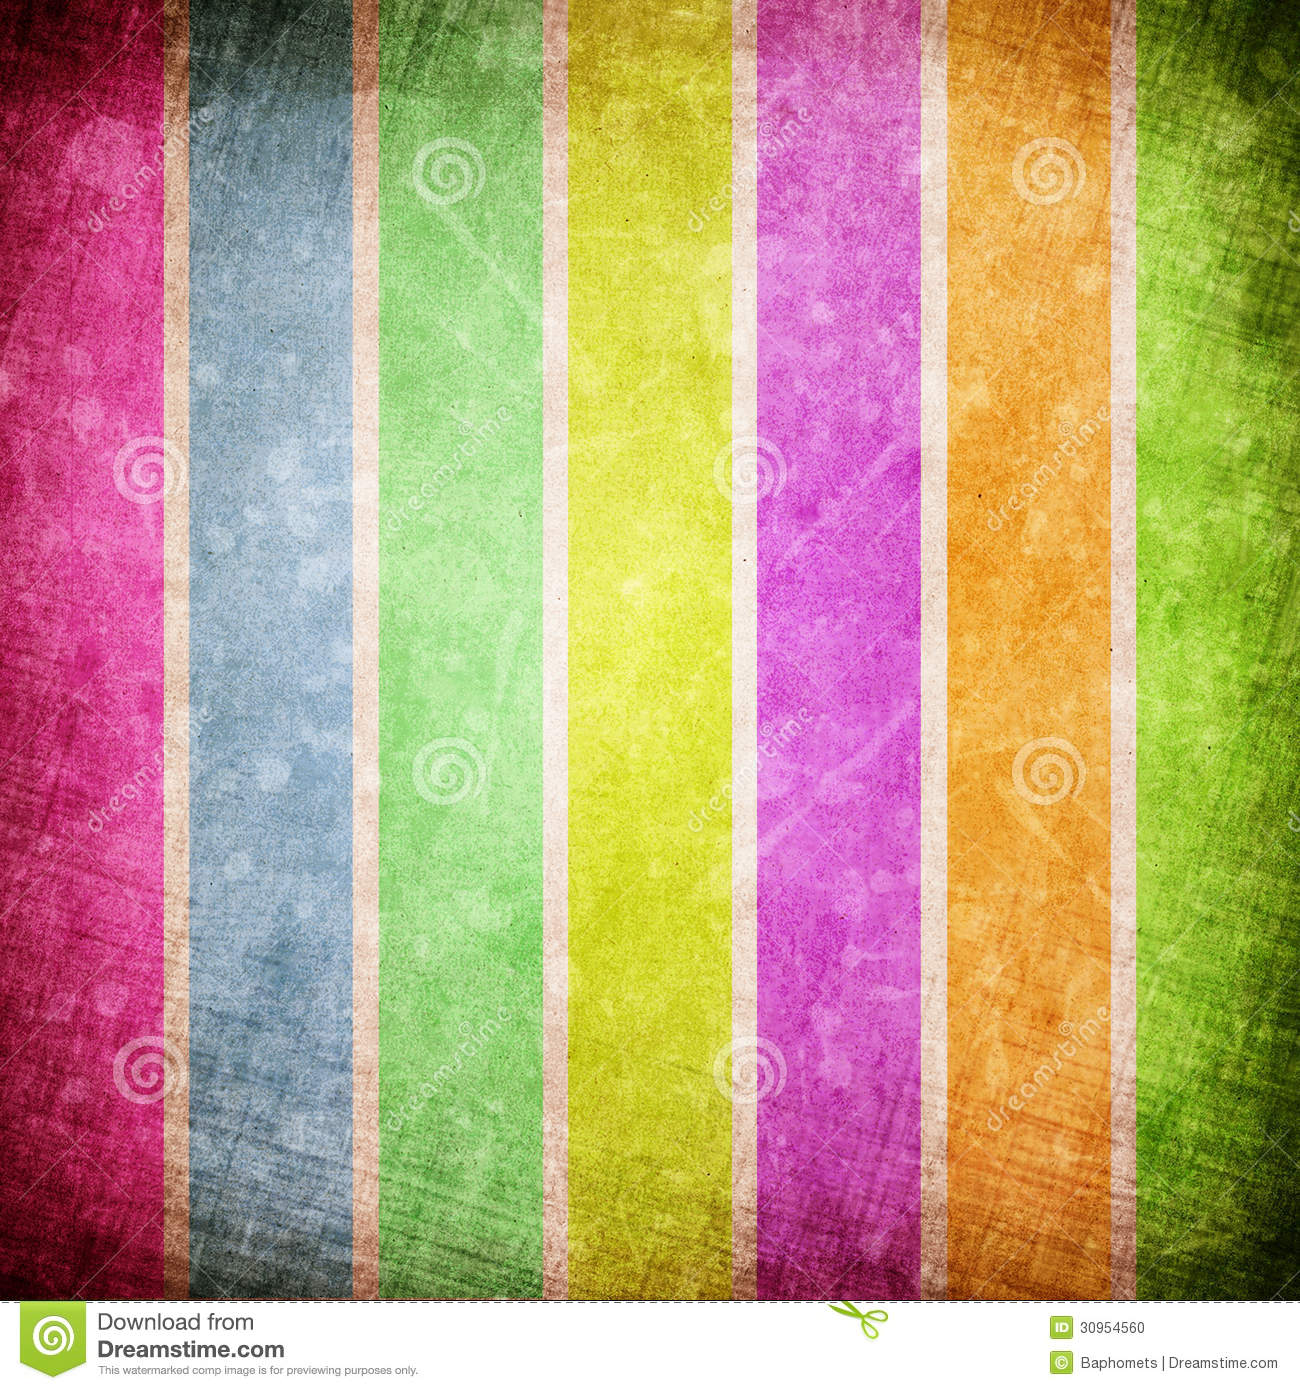 colorful carpet texture background - photo #30